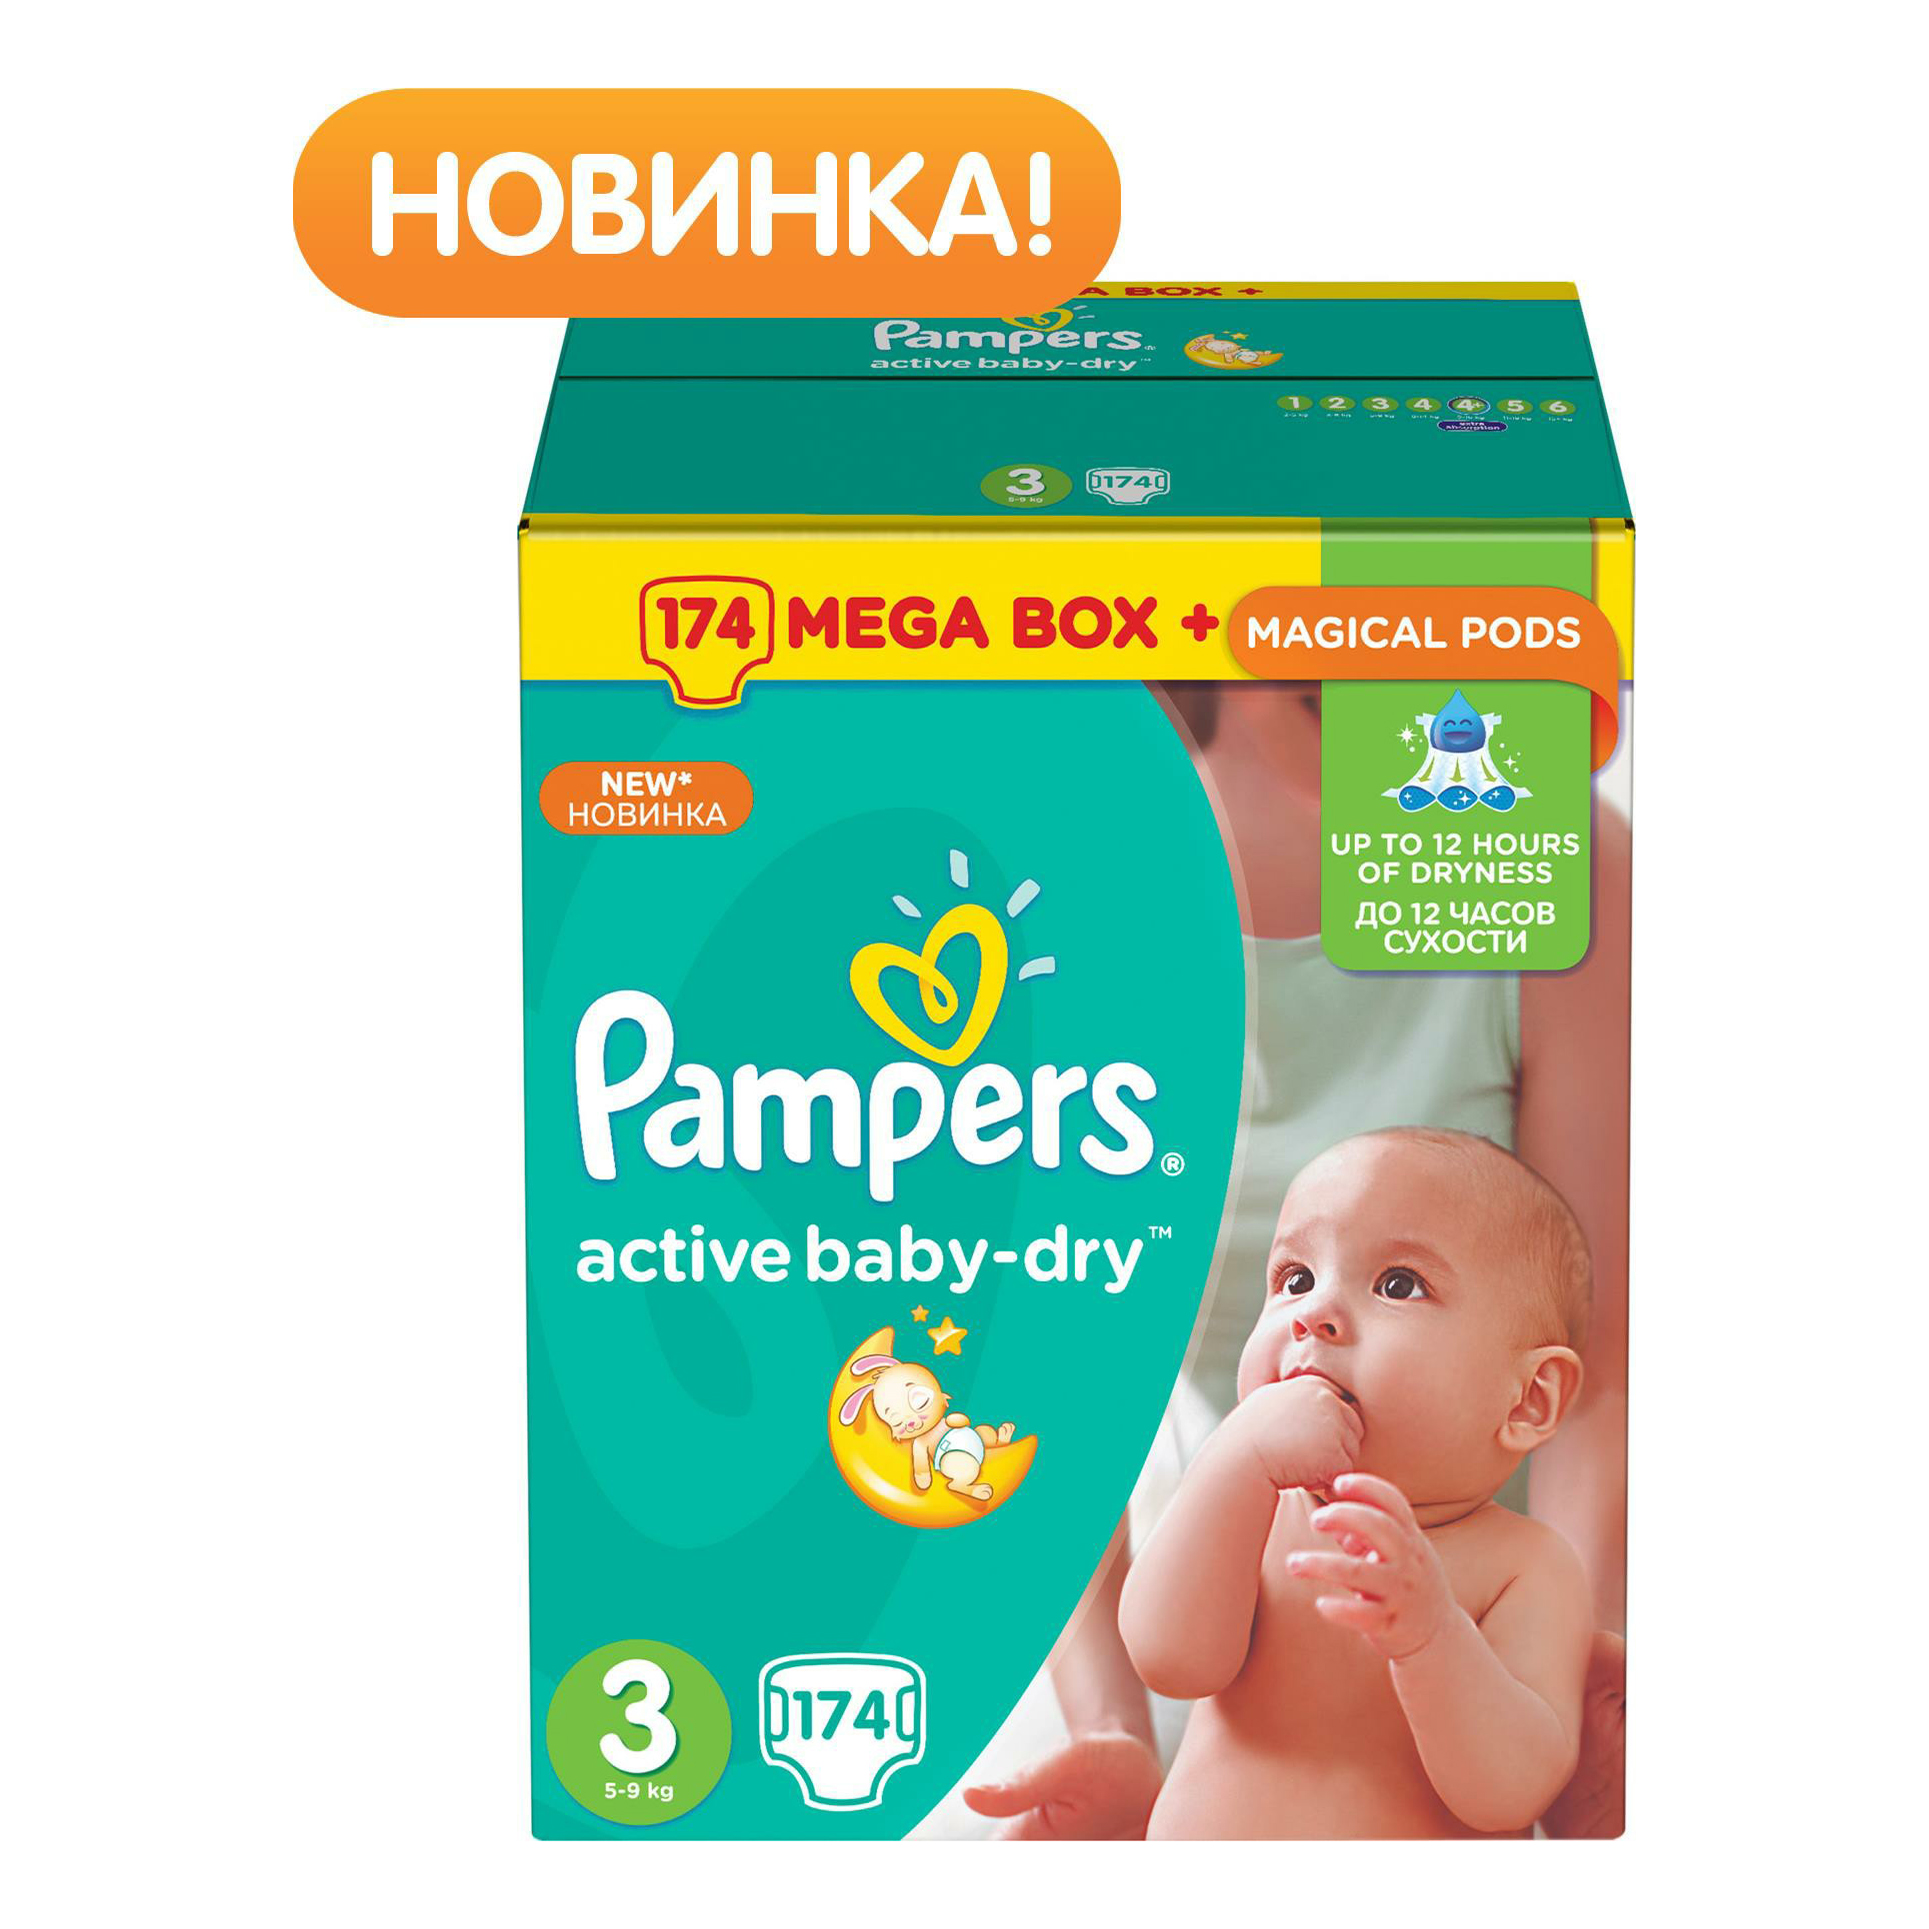 Подгузники Pampers Active Baby-Dry-Dry 3 midi 5-9 кг mega box